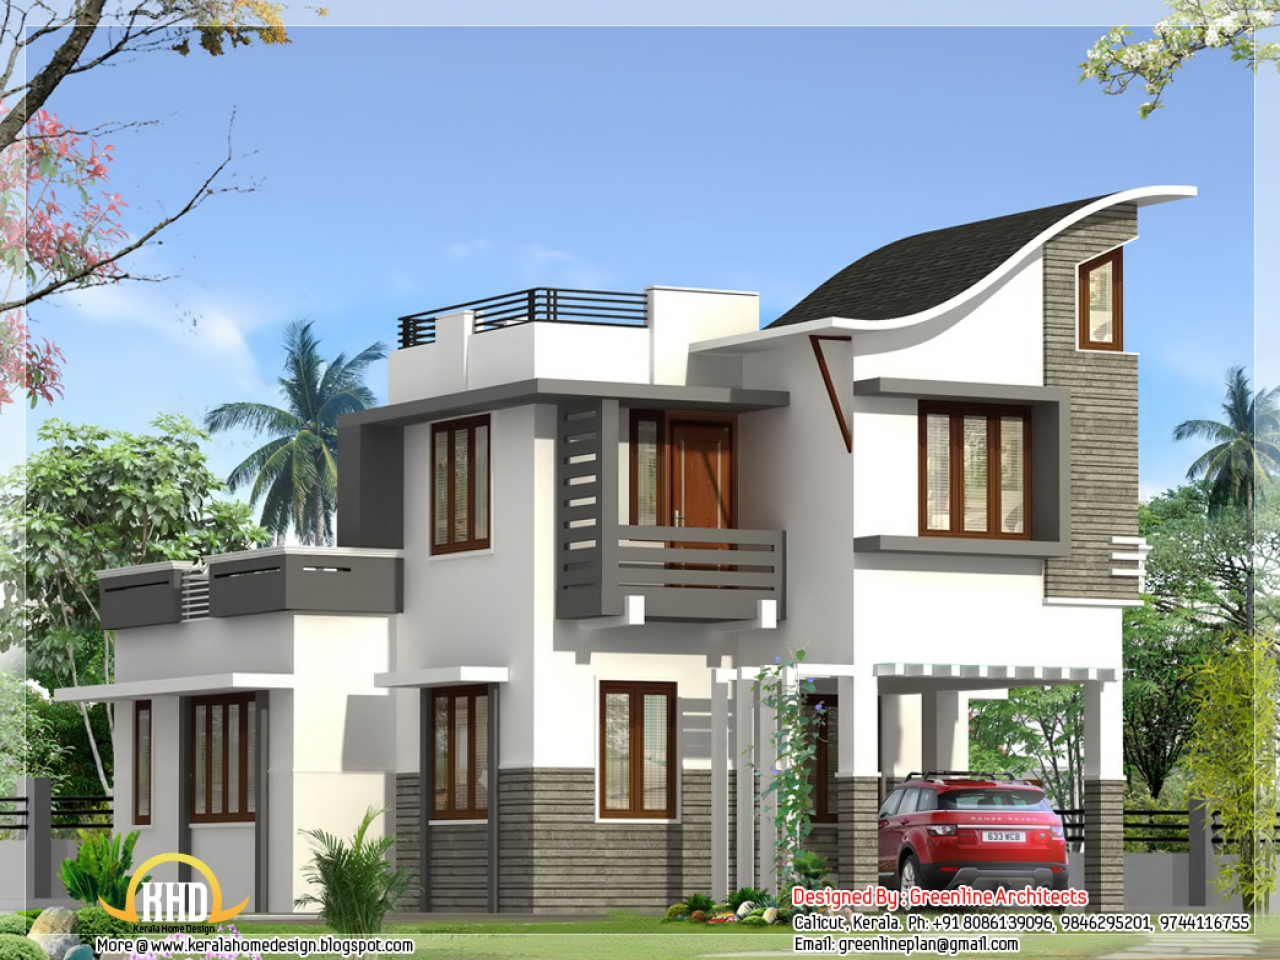 Beautiful house designs kerala style new kerala houses for Beautiful house ideas